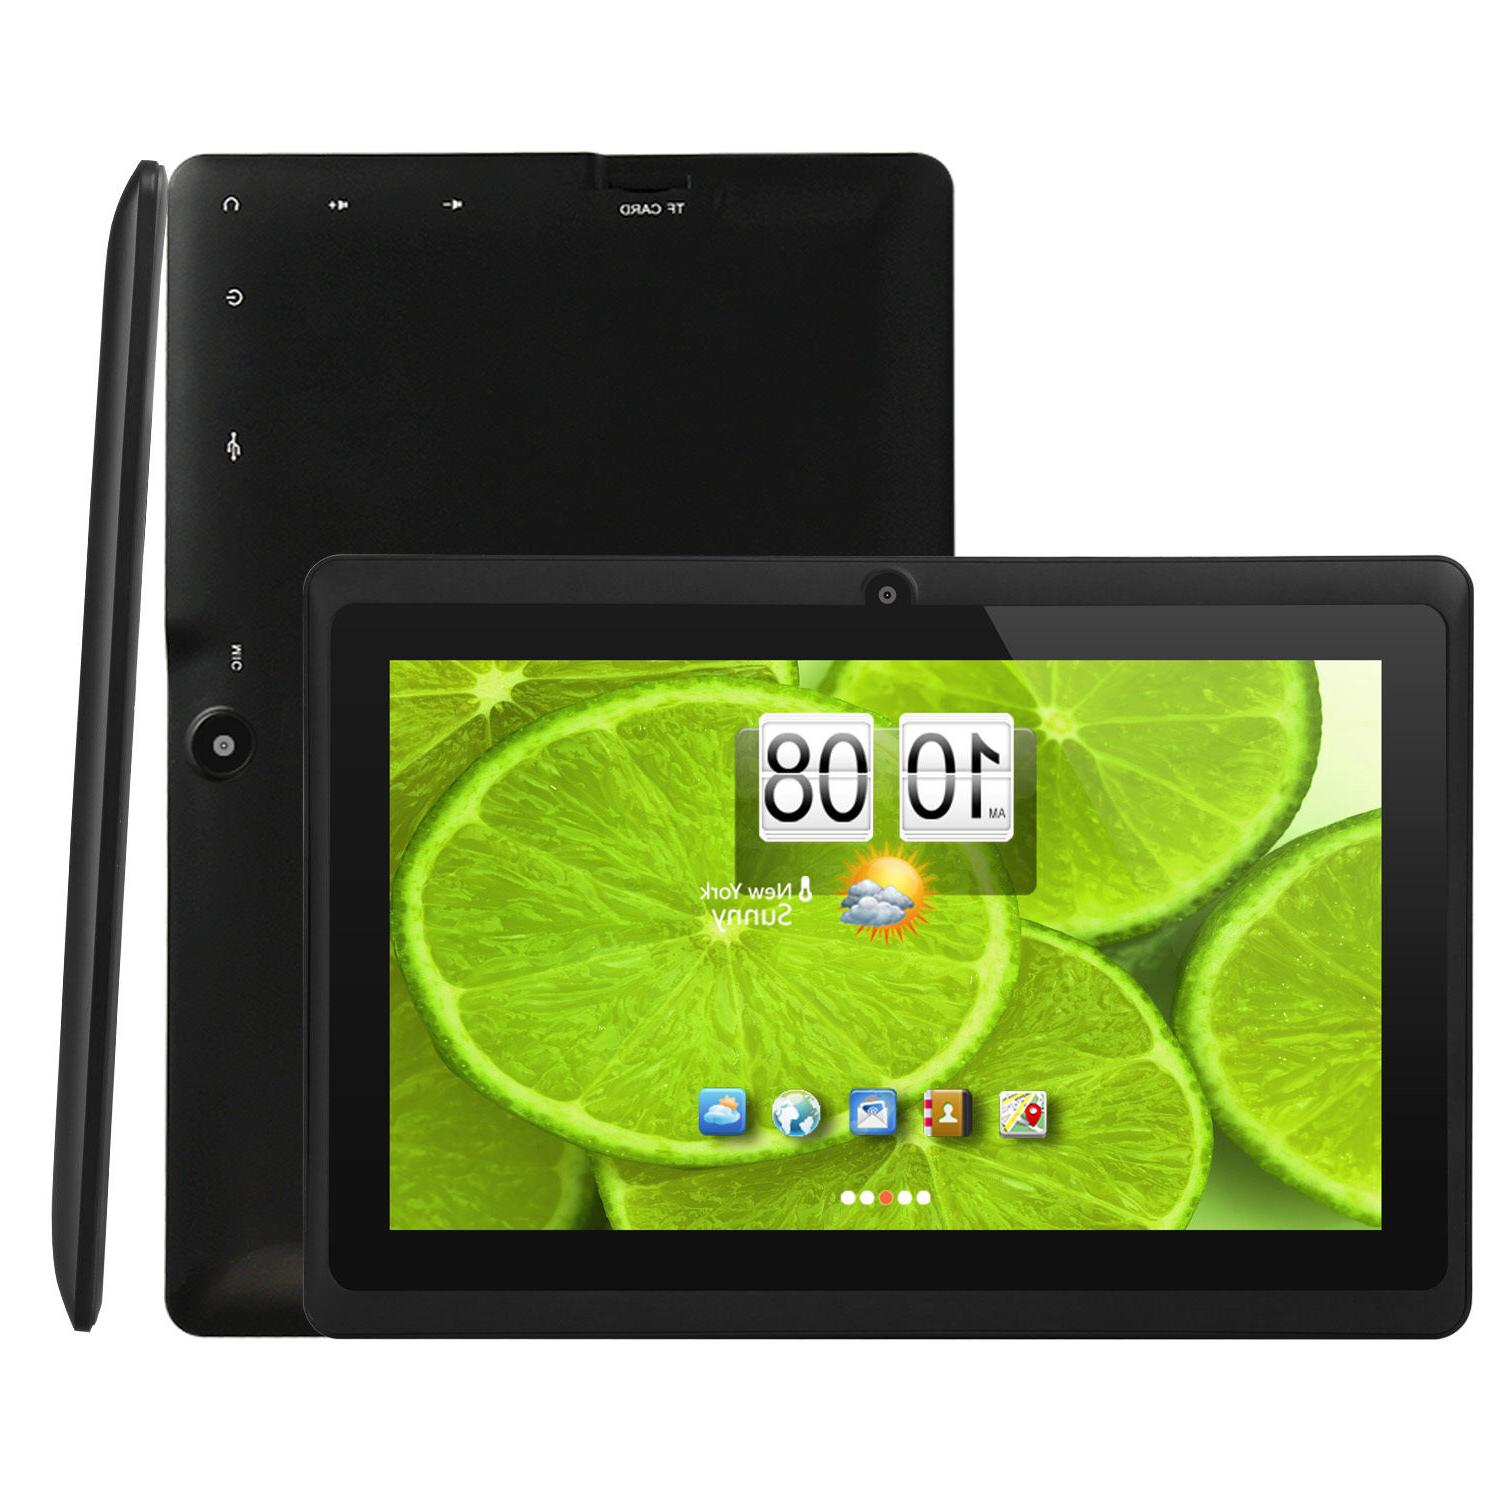 Quad Inch Android Tablet Camera & Keyboard